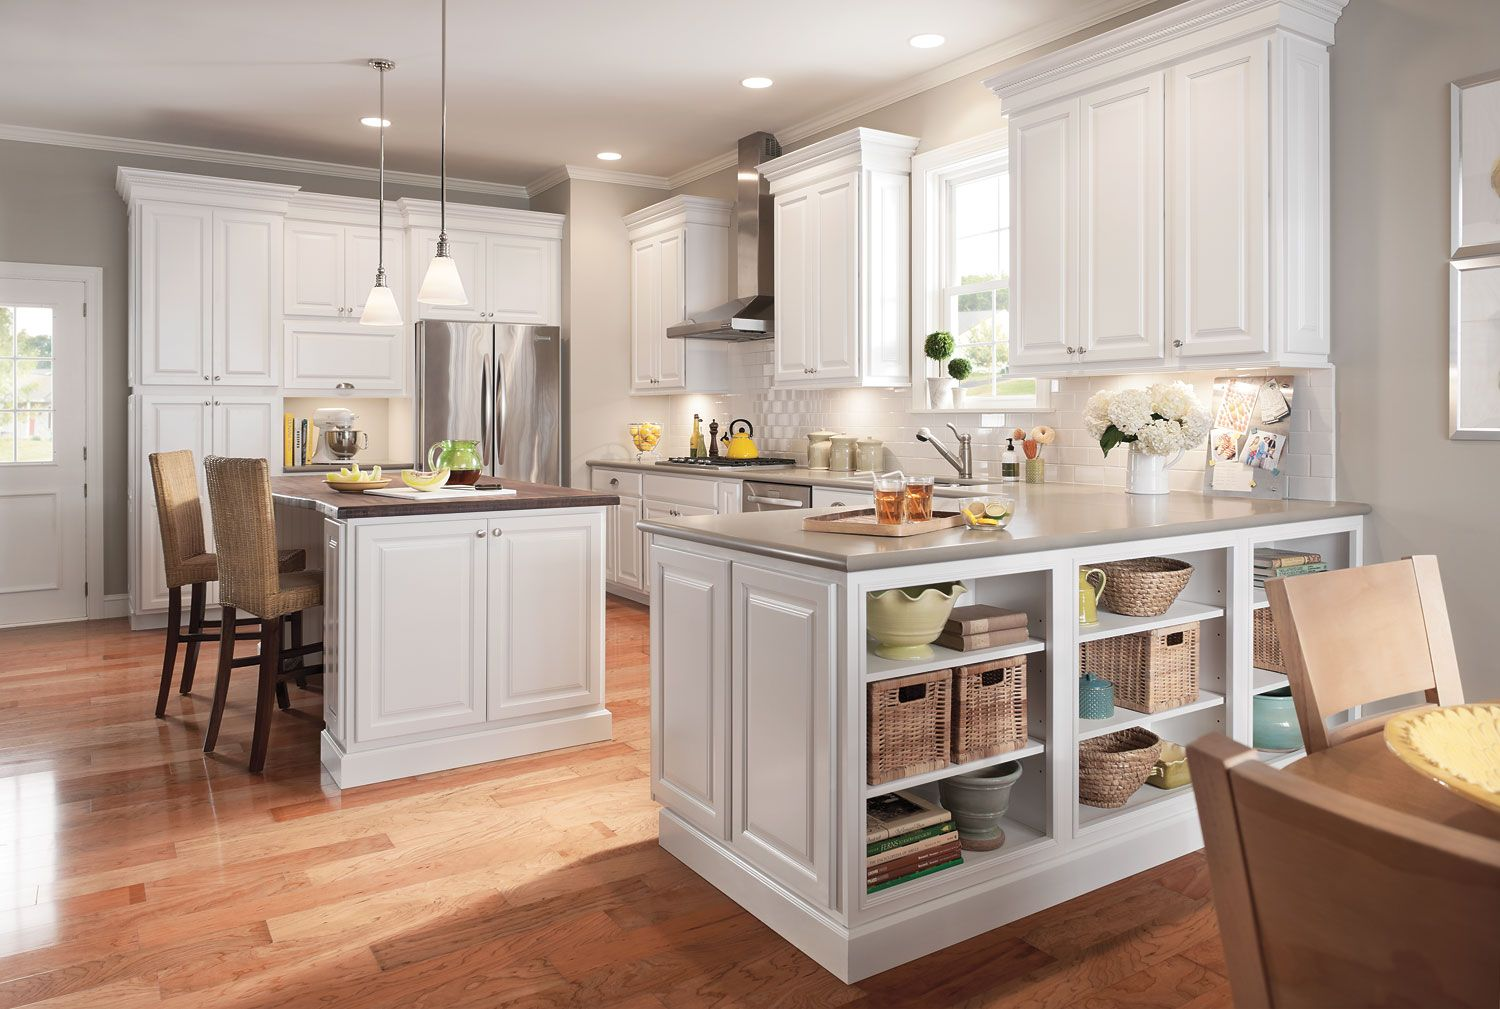 Singer kitchens cabinets to go new orleans stocked cabinets singer - Kitchen Featuring Open Storage Cabinets From Timberlake Cabinets Accent Interiors